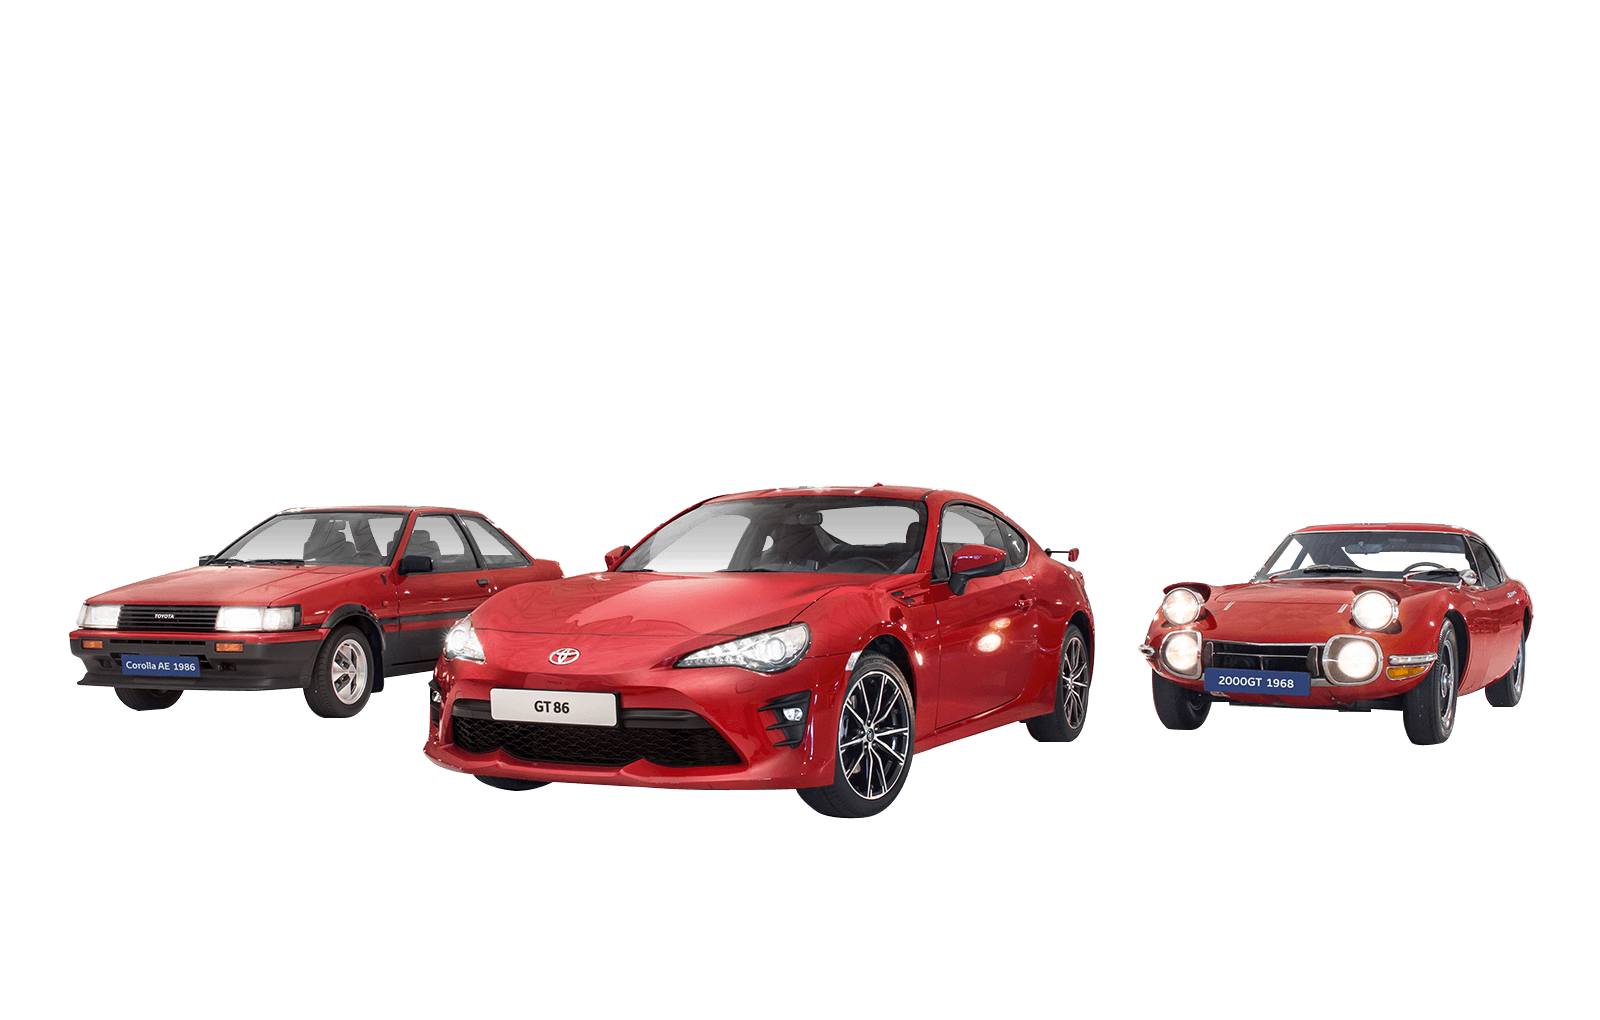 Since The 1960s, Toyota Has Surprised And Delighted People With Its  Interpretation Of What Makes An Engaging, Exciting And Entertaining Sports  Car.